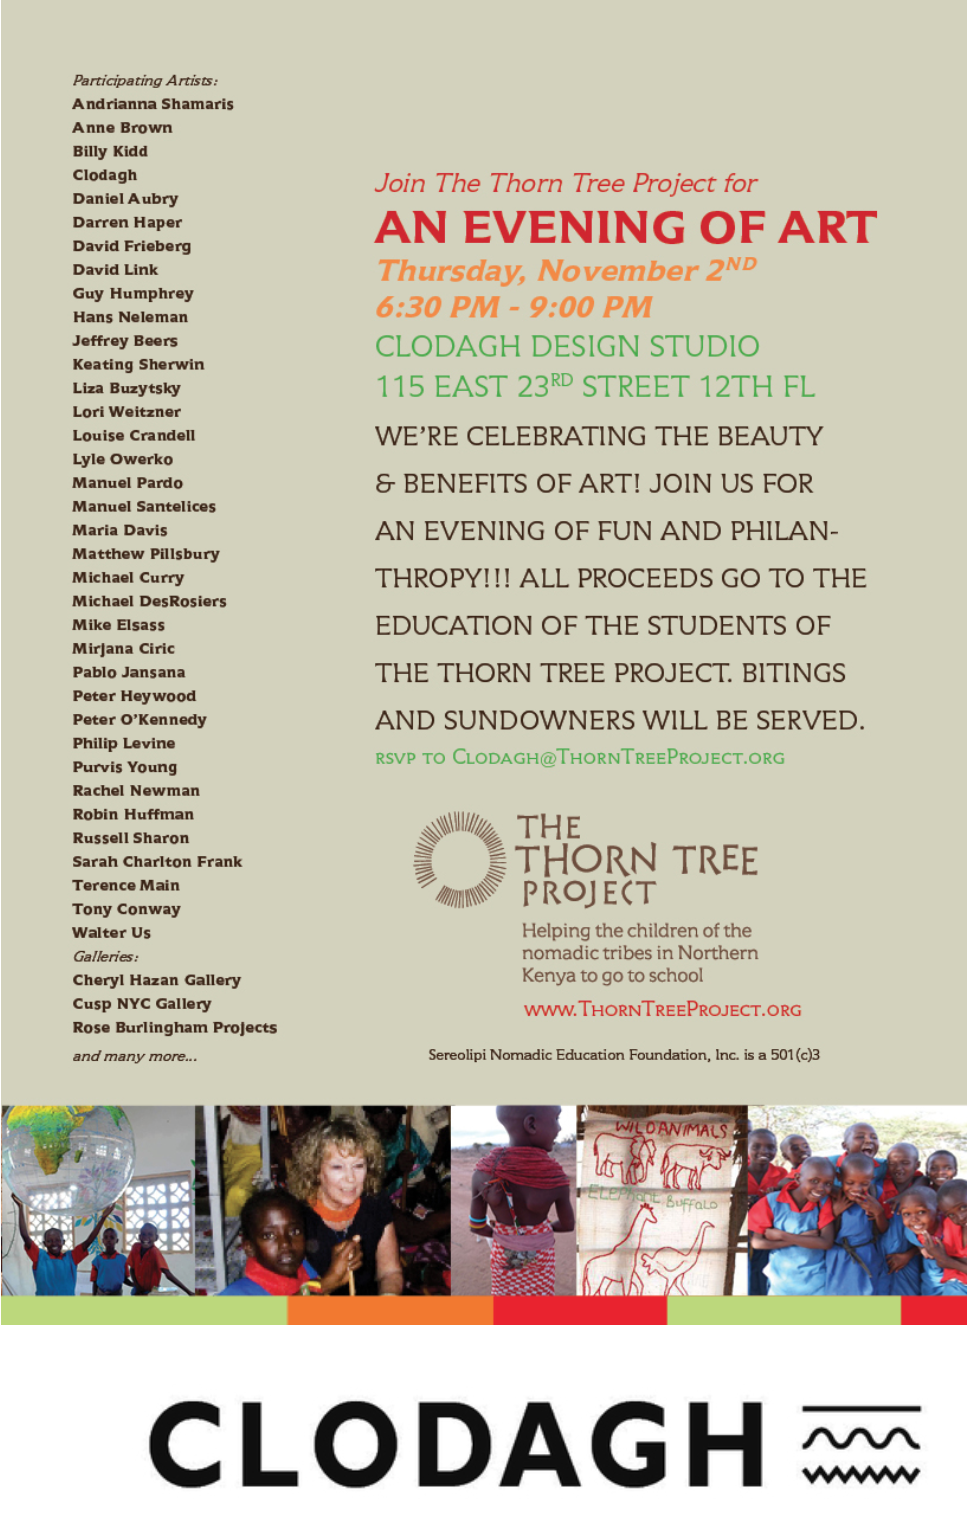 The Thorn Tree Project